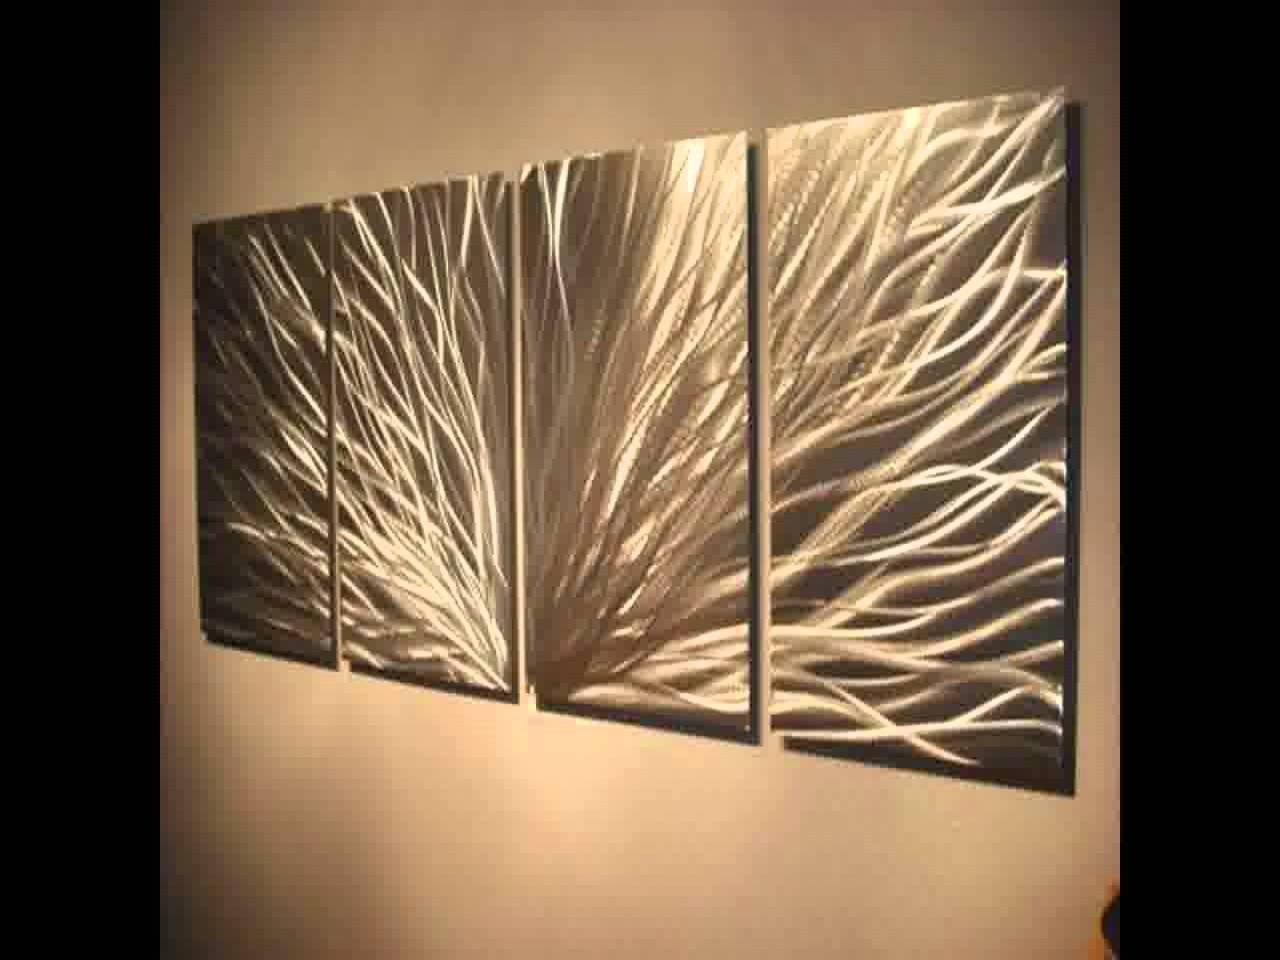 Wall Art For Men Design Ideas - Youtube throughout Wall Art for Guys